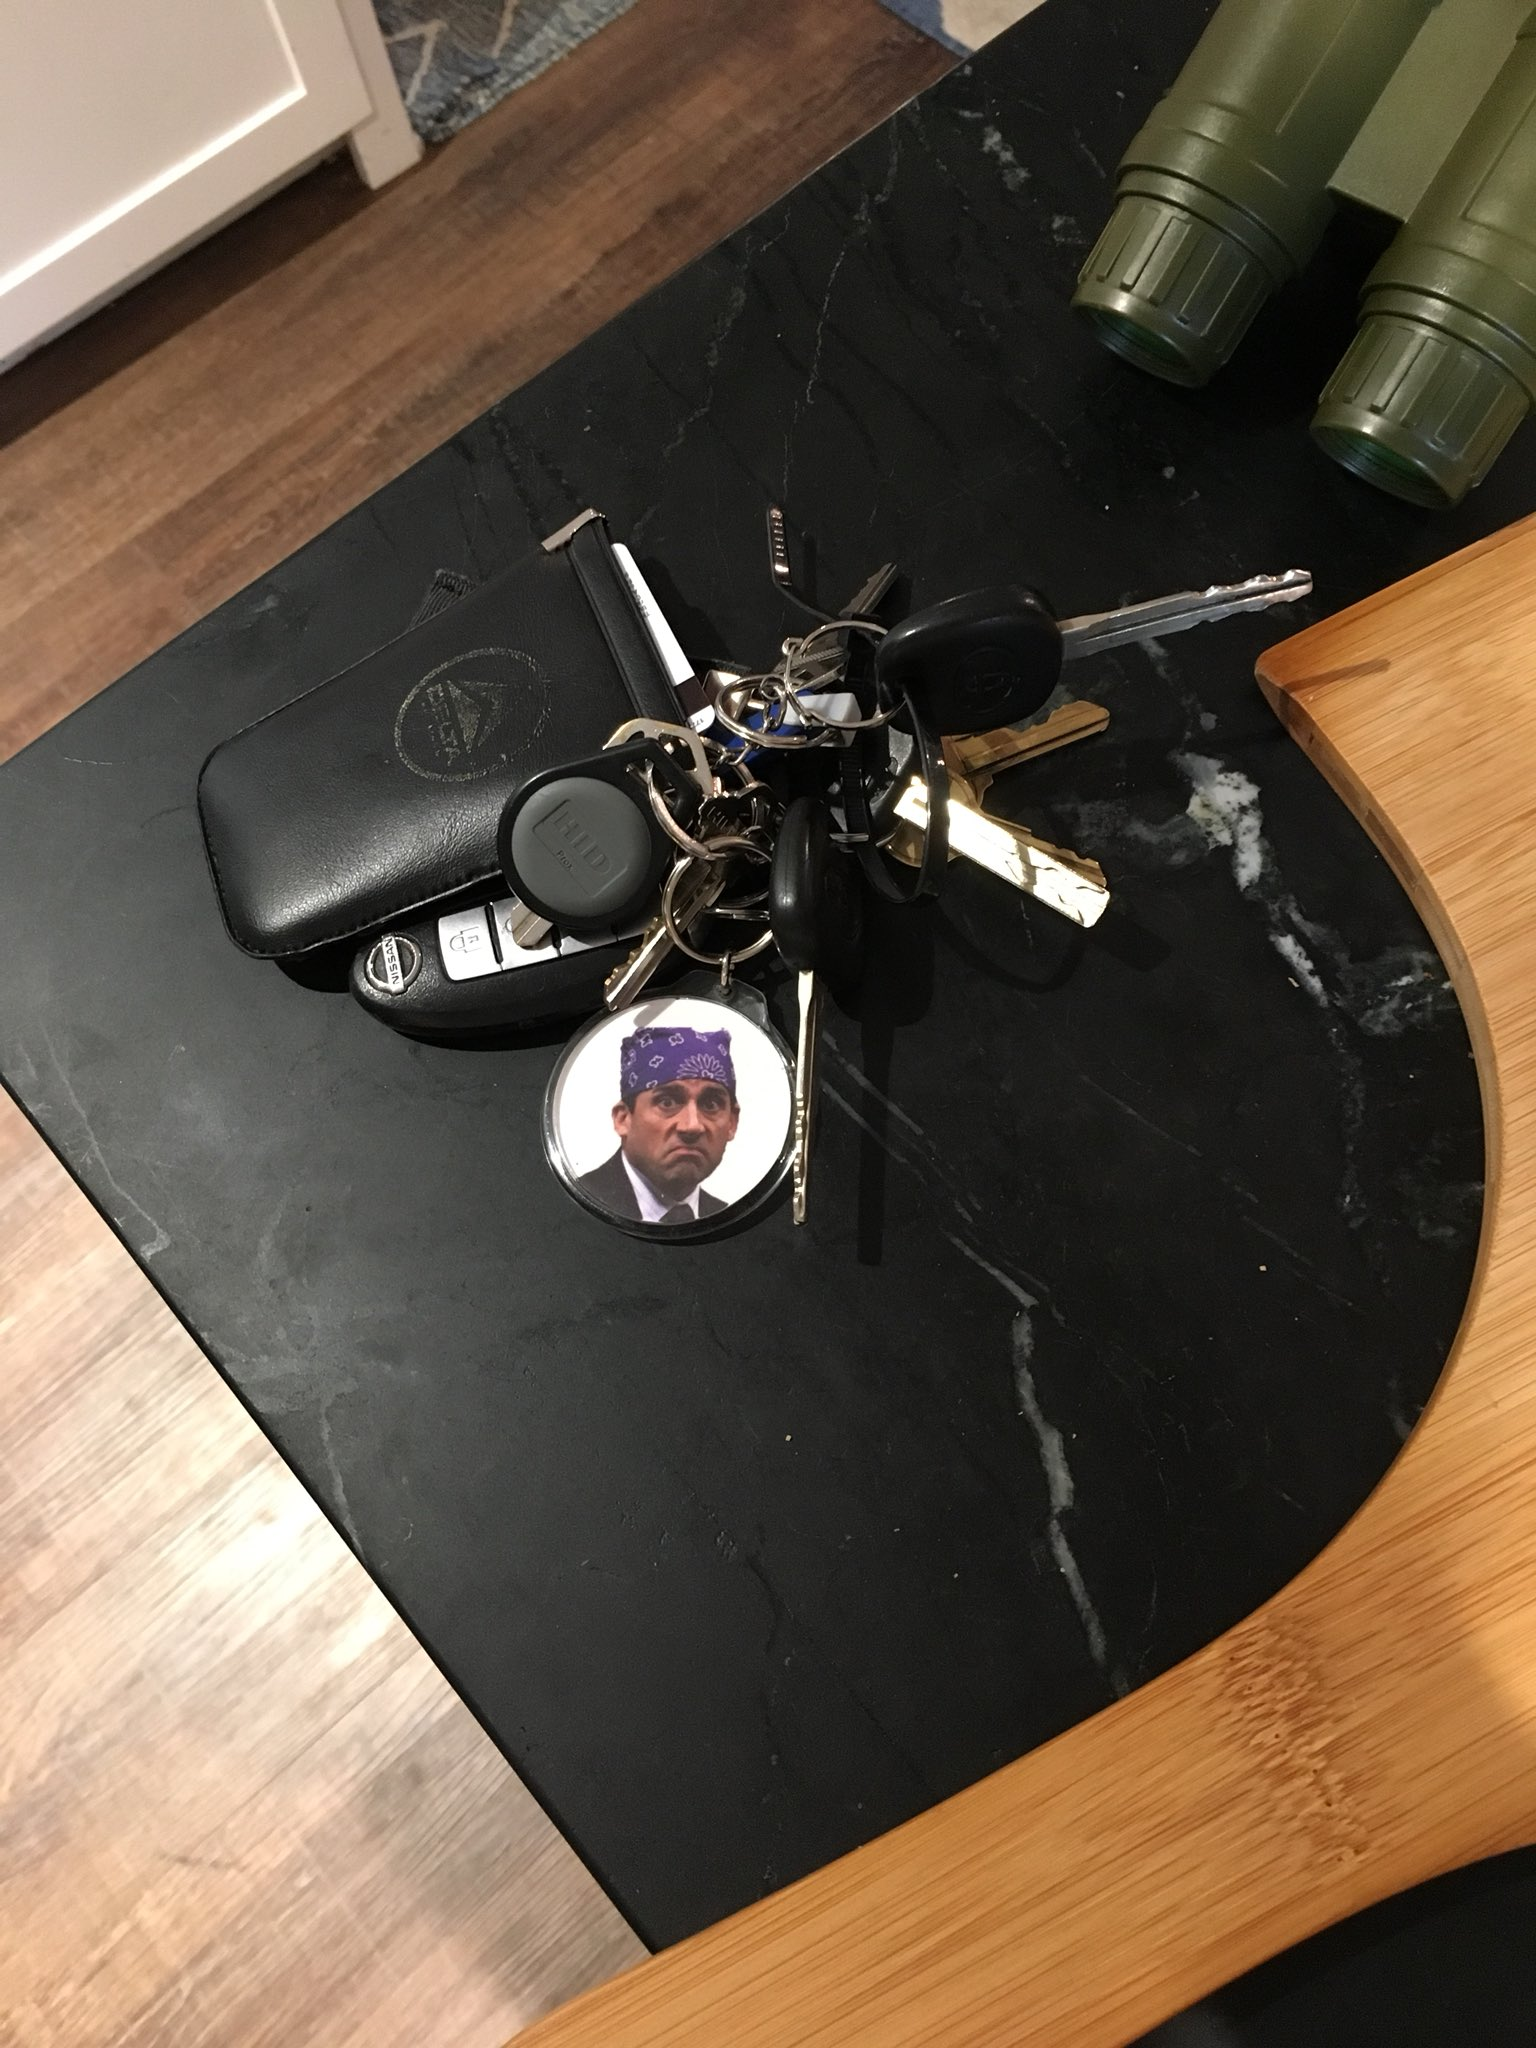 """my 8 yr old neighbor saw my new keychain and said """"is that your boyfriend?????"""" https://t.co/h3BCeV7ZgW"""